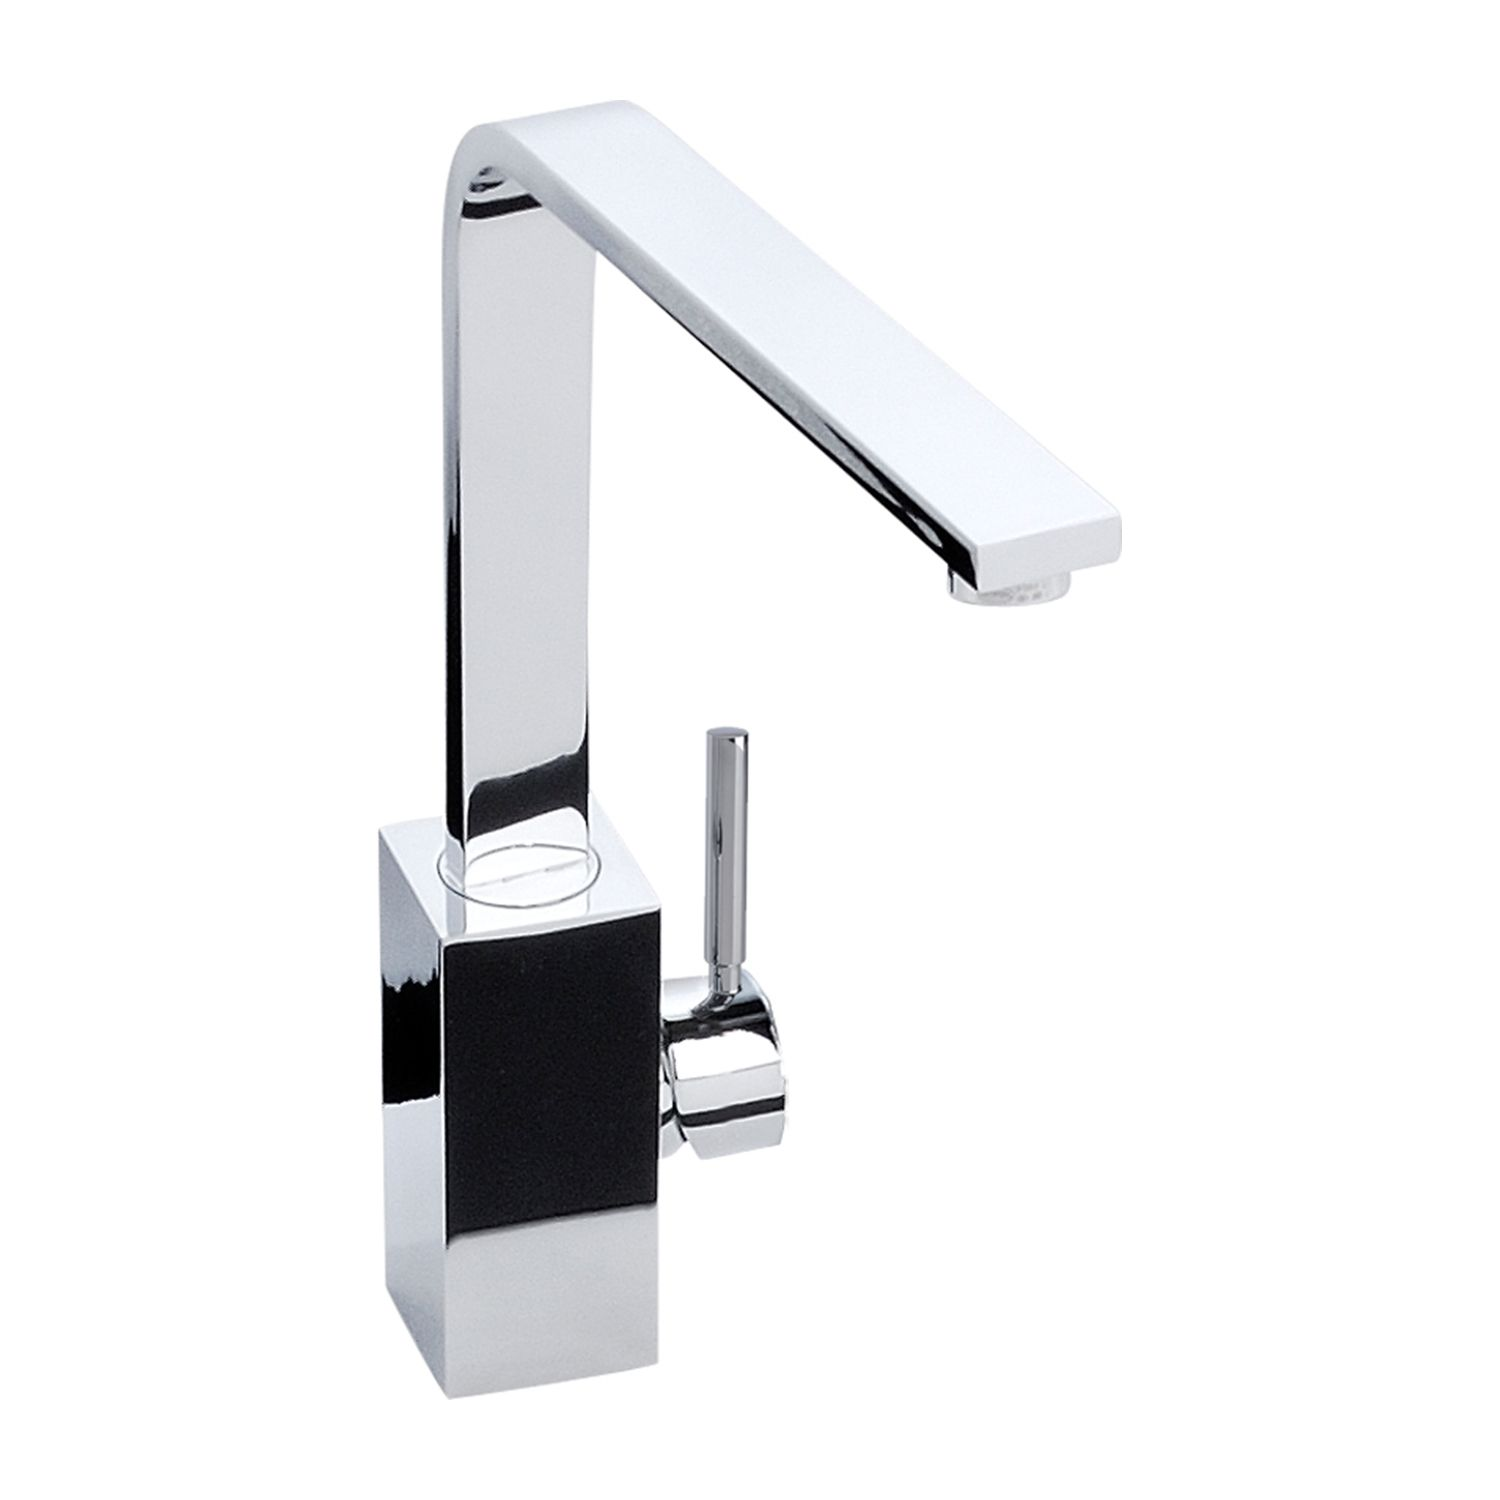 Bluci Lineare WRAS Single Lever Kitchen Tap - Sinks-Taps.com